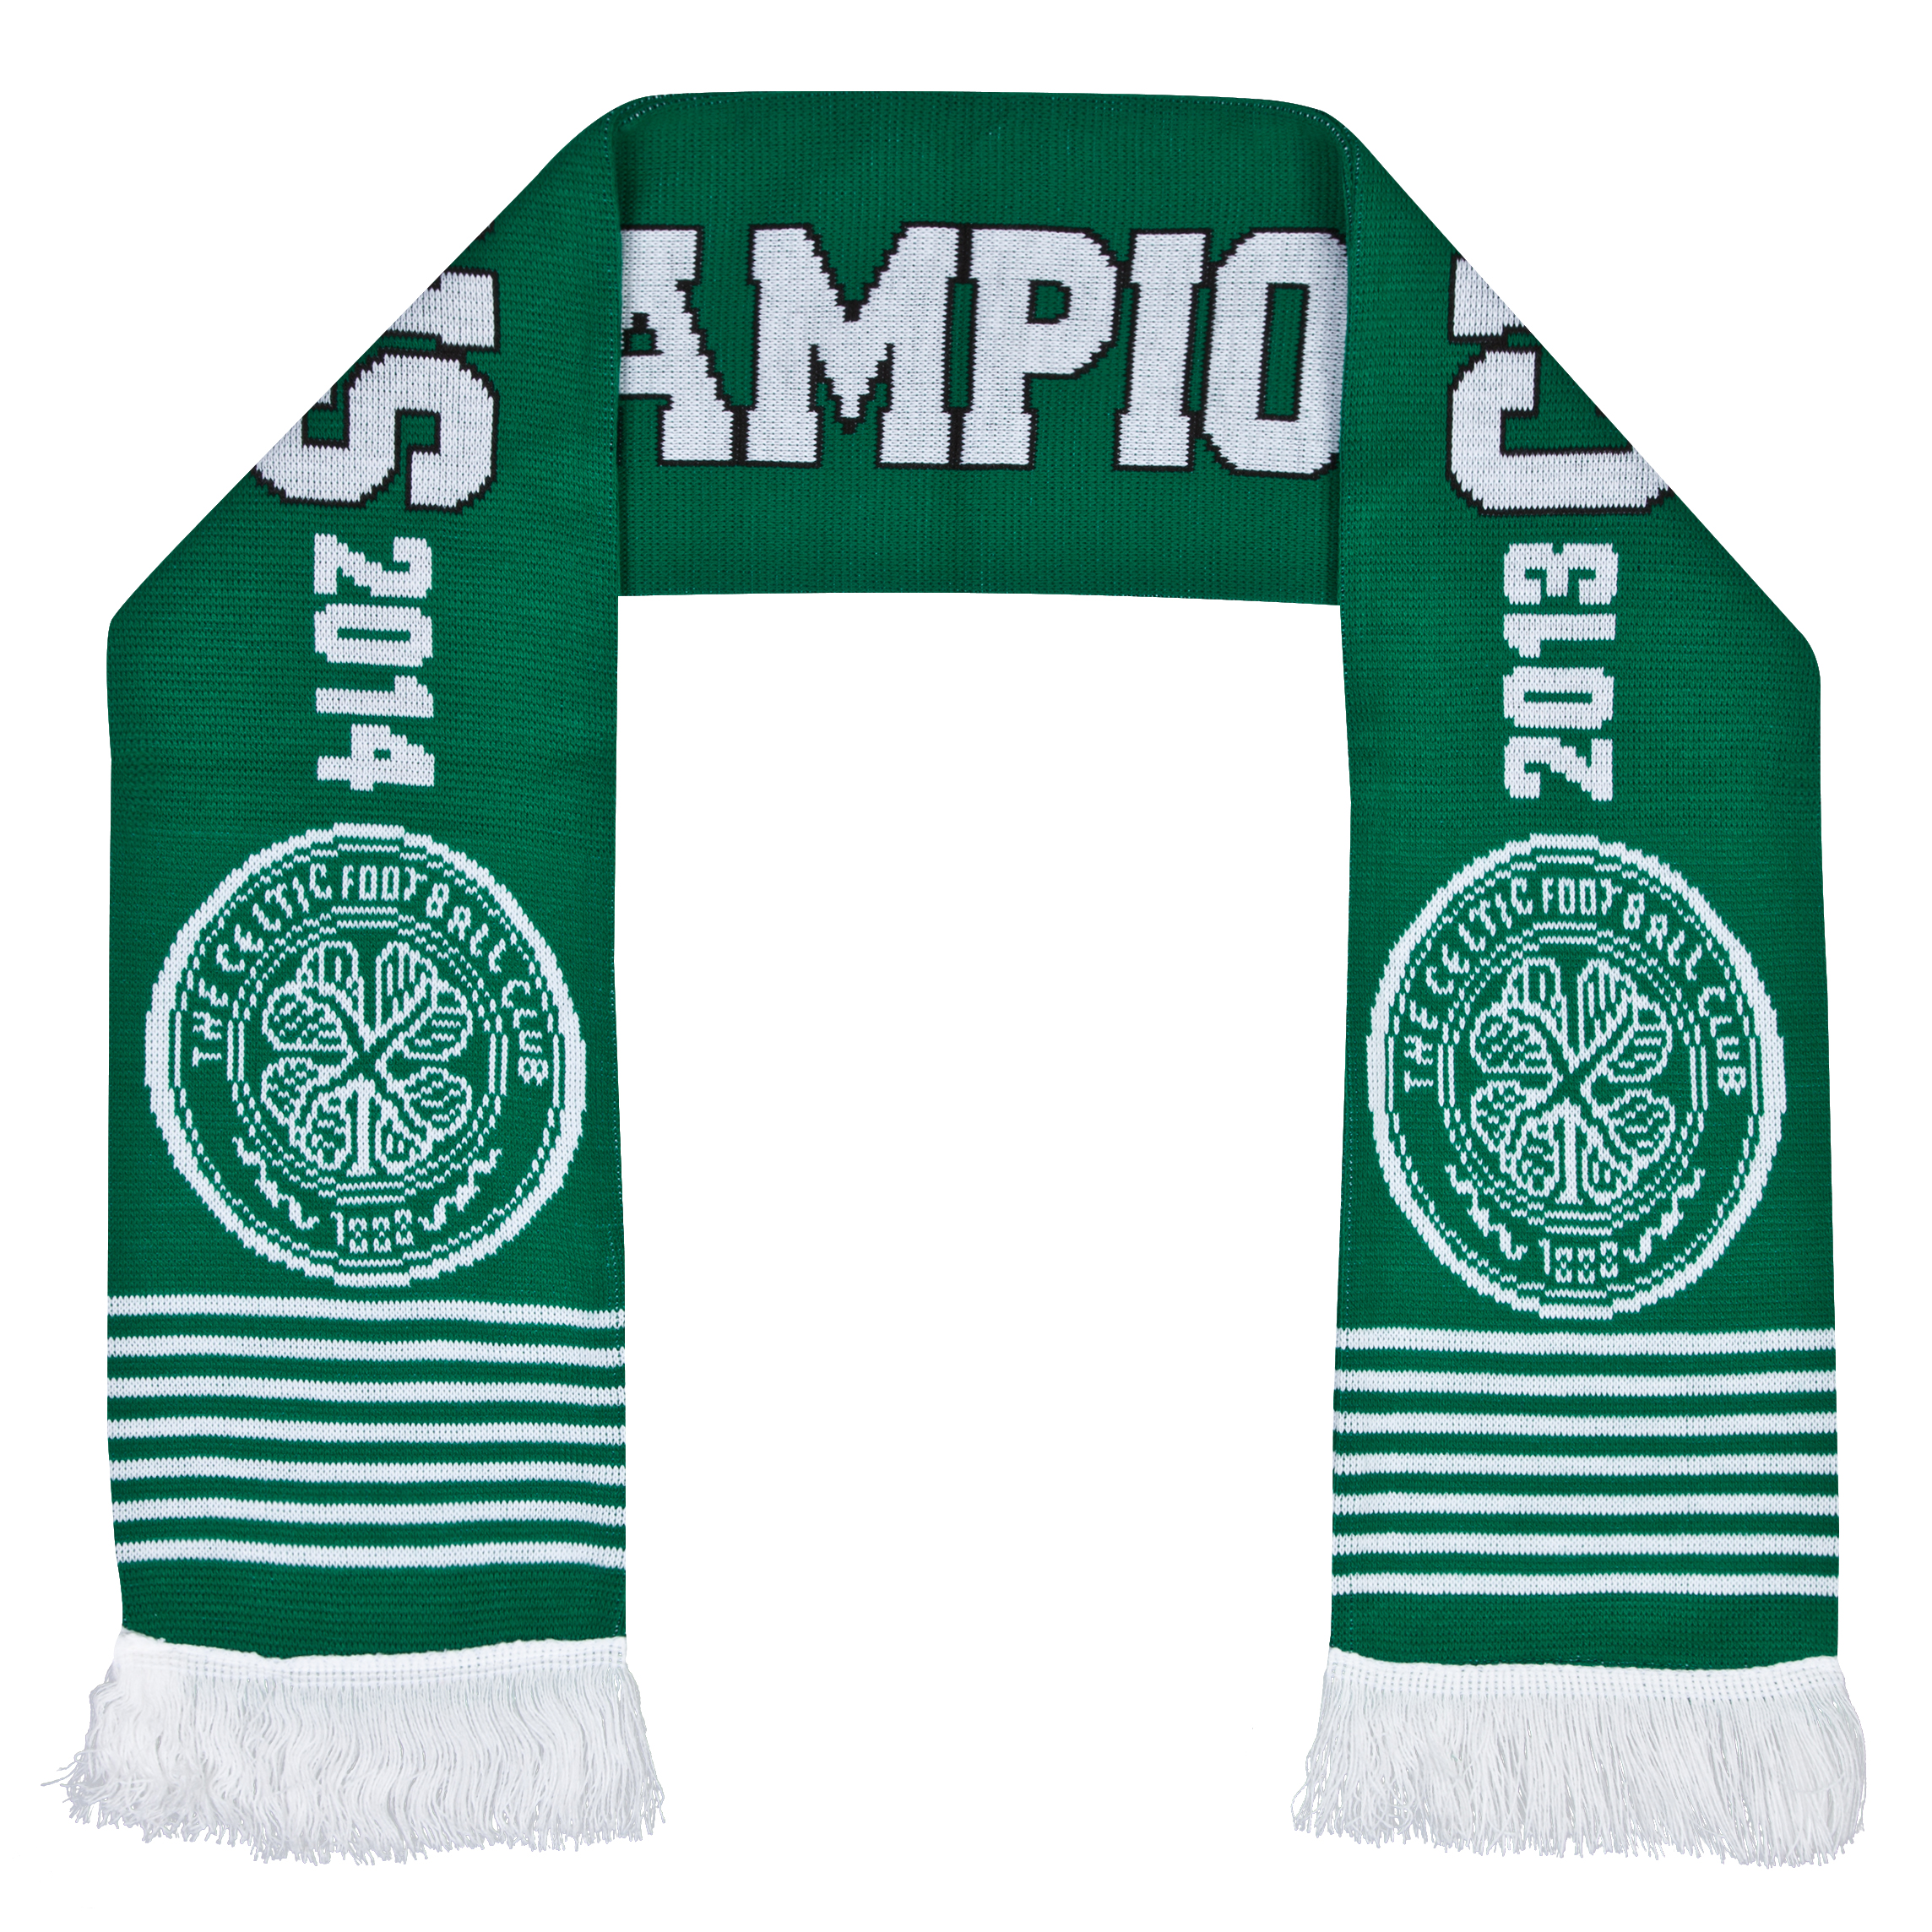 Celtic 2013/14 Champions Scarf - Adult